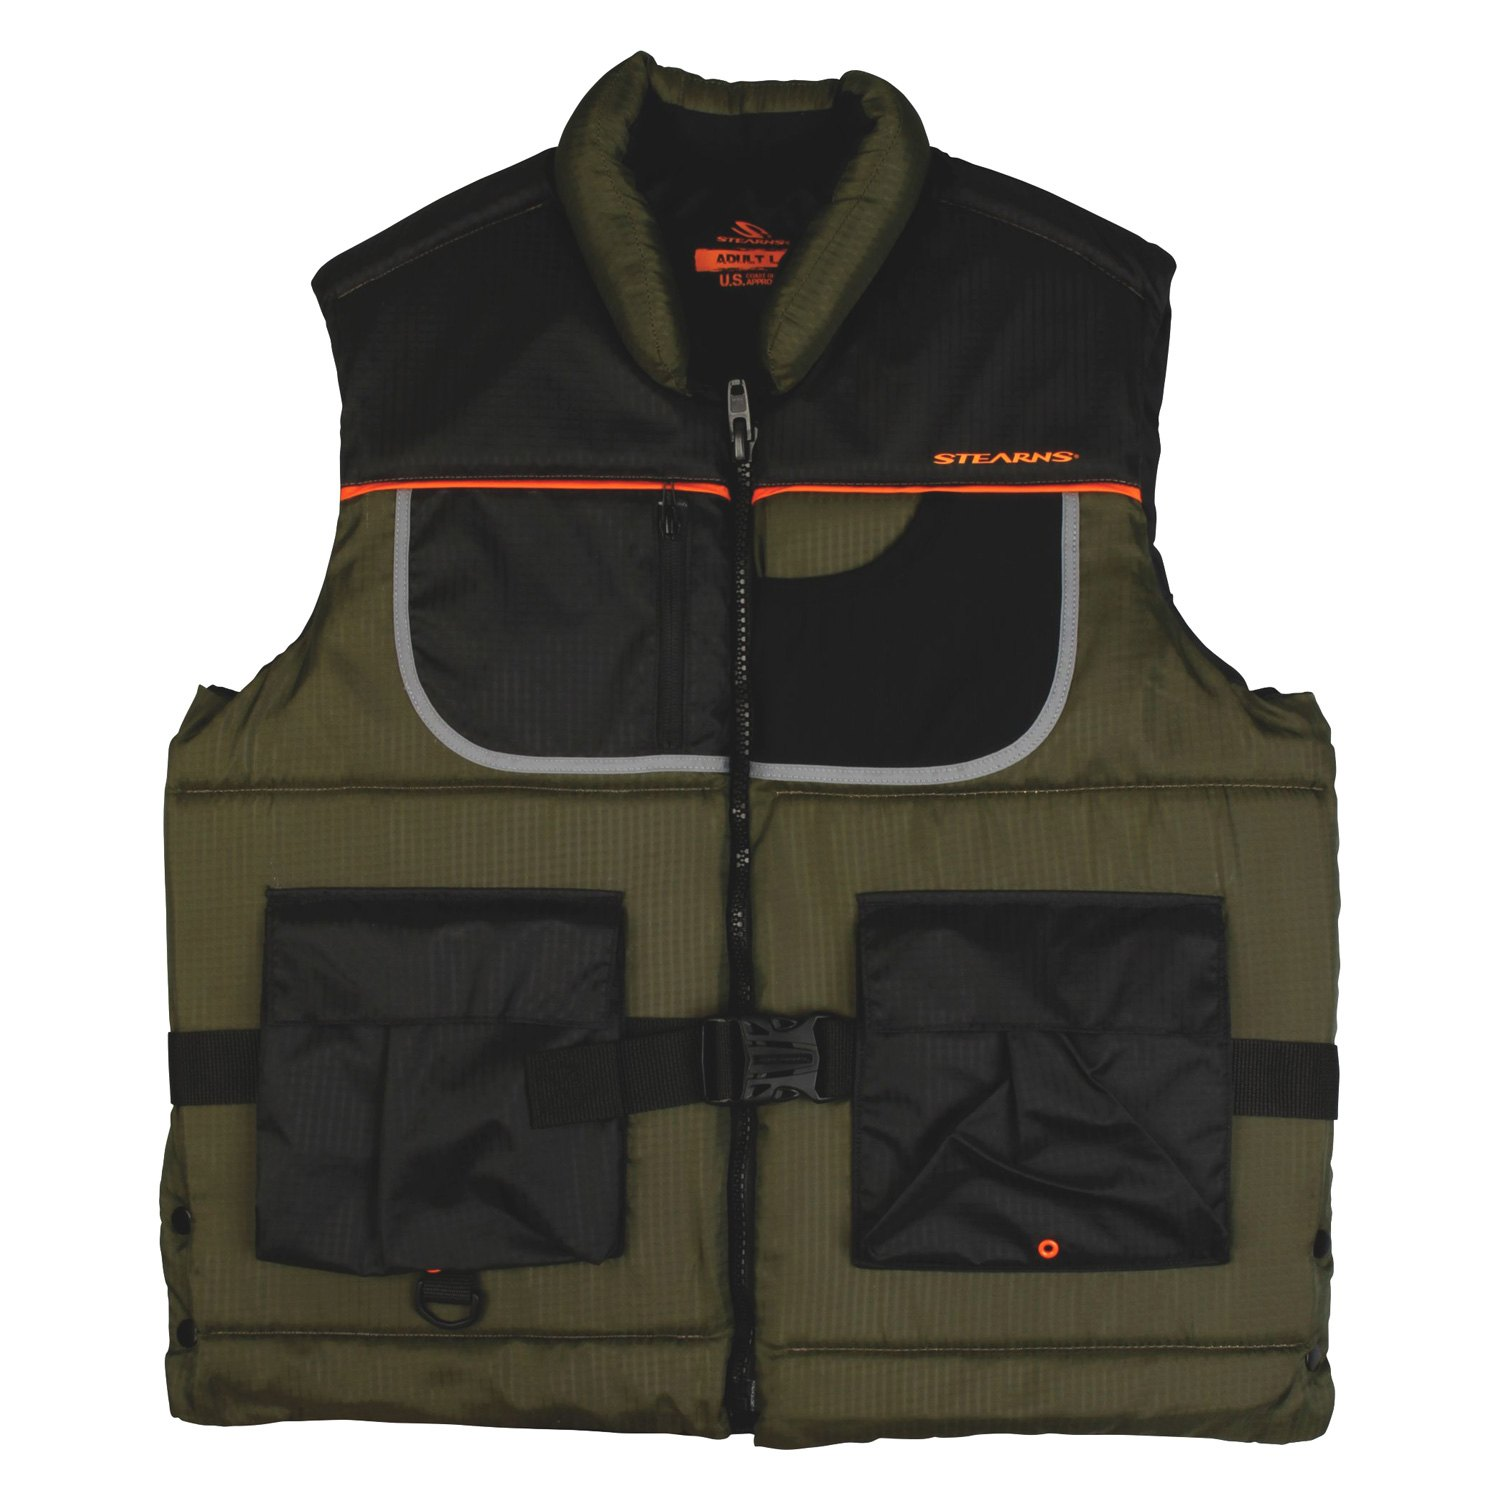 Womne S Stearns Flotation Jacket Bing Images